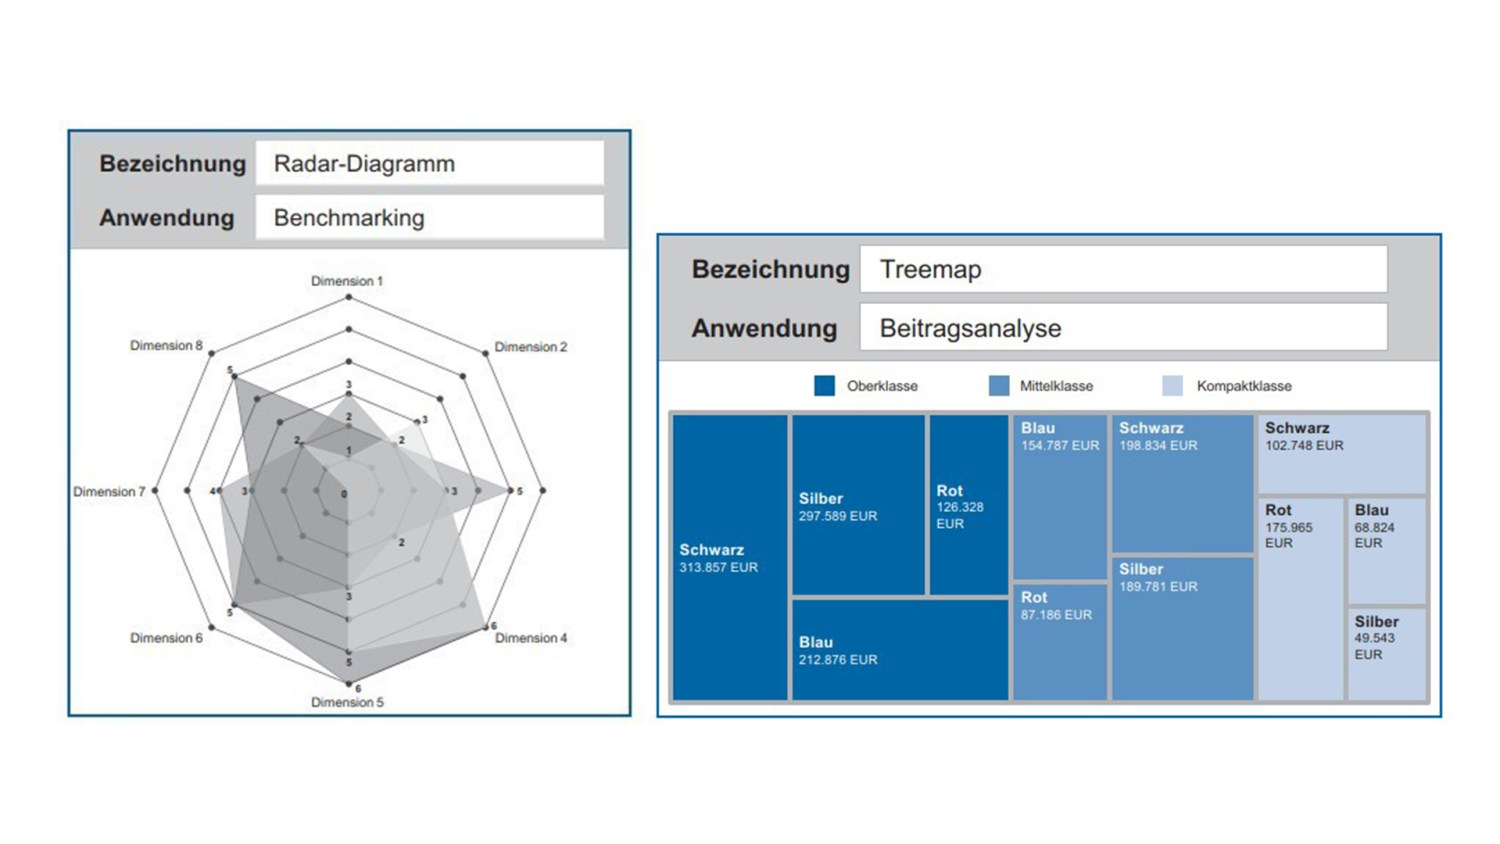 Abbildung 3: Power BI innovative Diagramme (Radar Chart und Treemap).